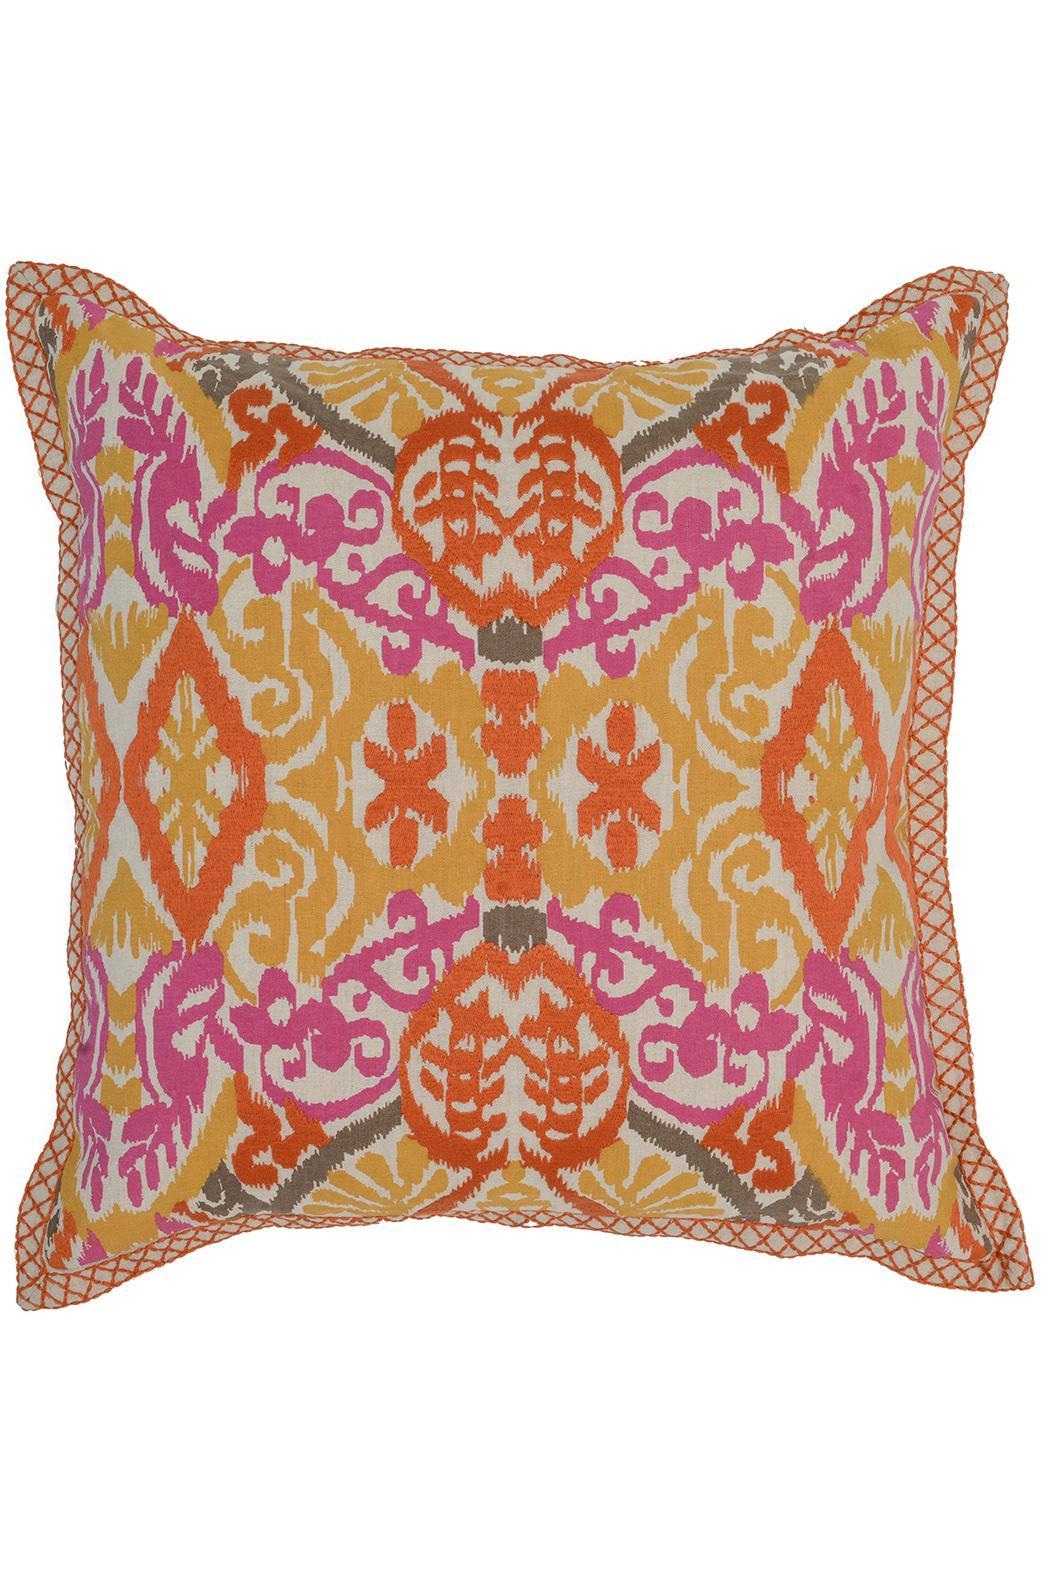 Villa home collection sunda mango pillow from atlanta by for Villa home collection pillows